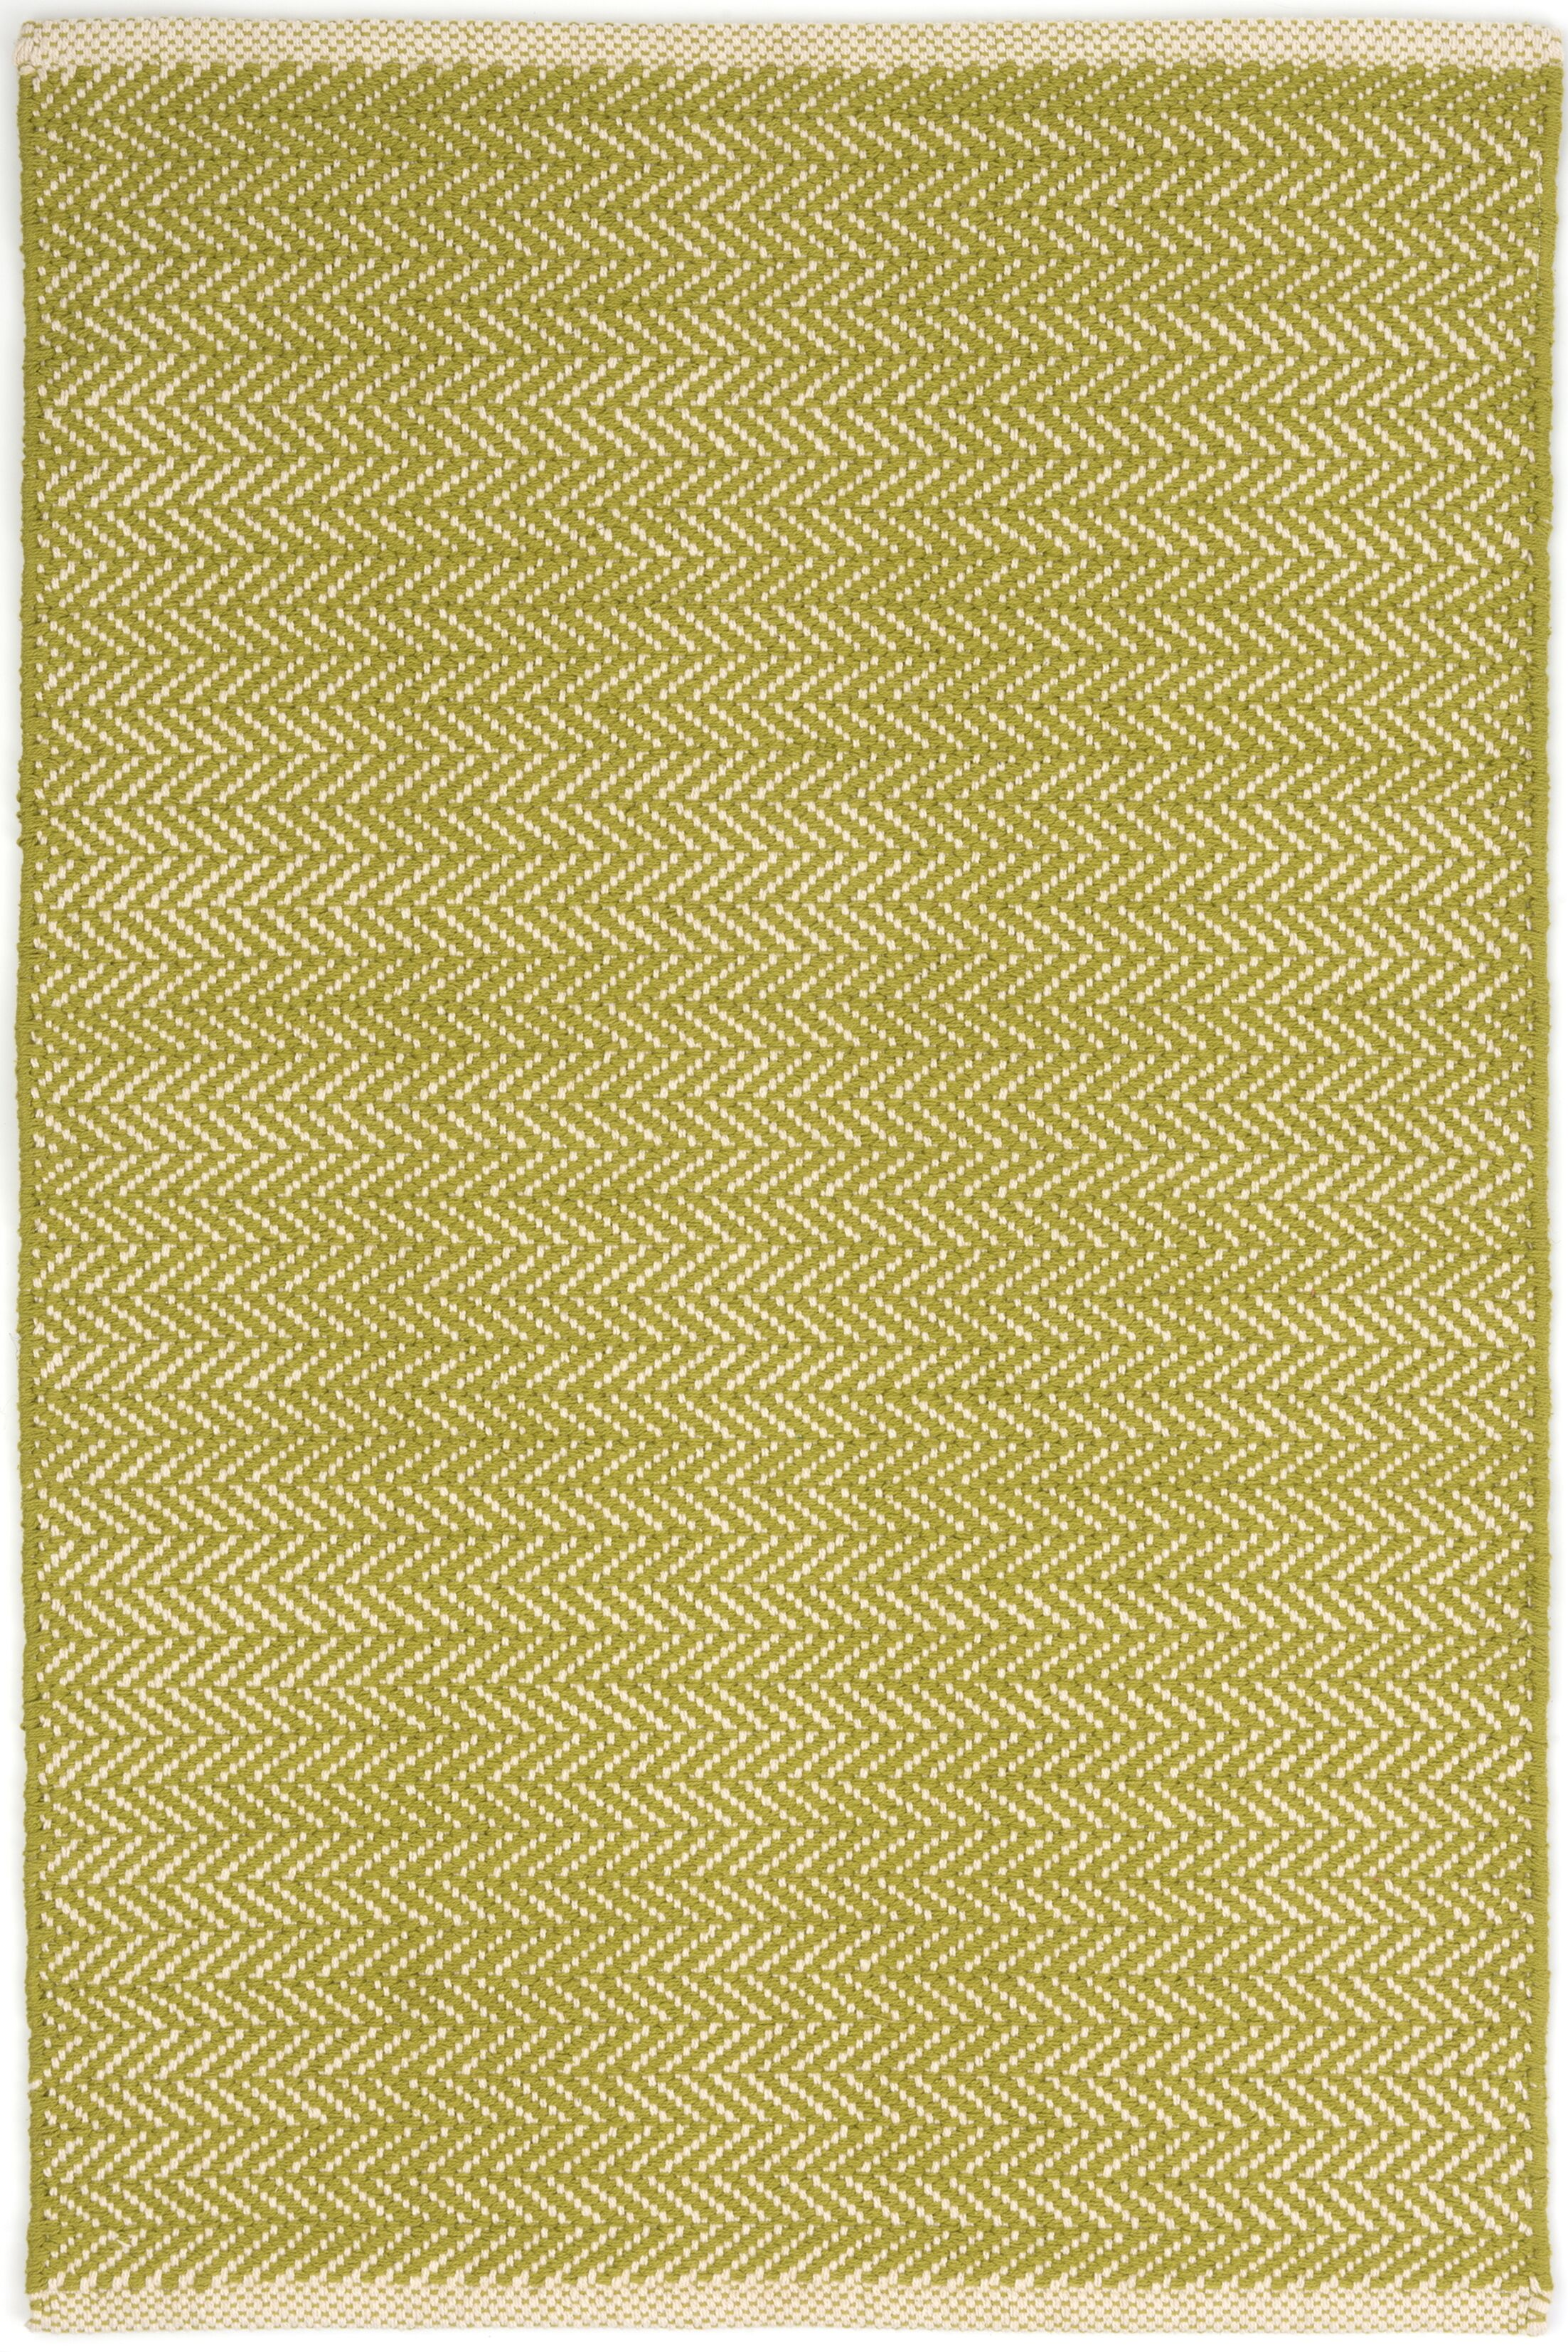 Herringbone Hand Woven Cotton Green Area Rug Rug Size: Rectangle 6' x 9'